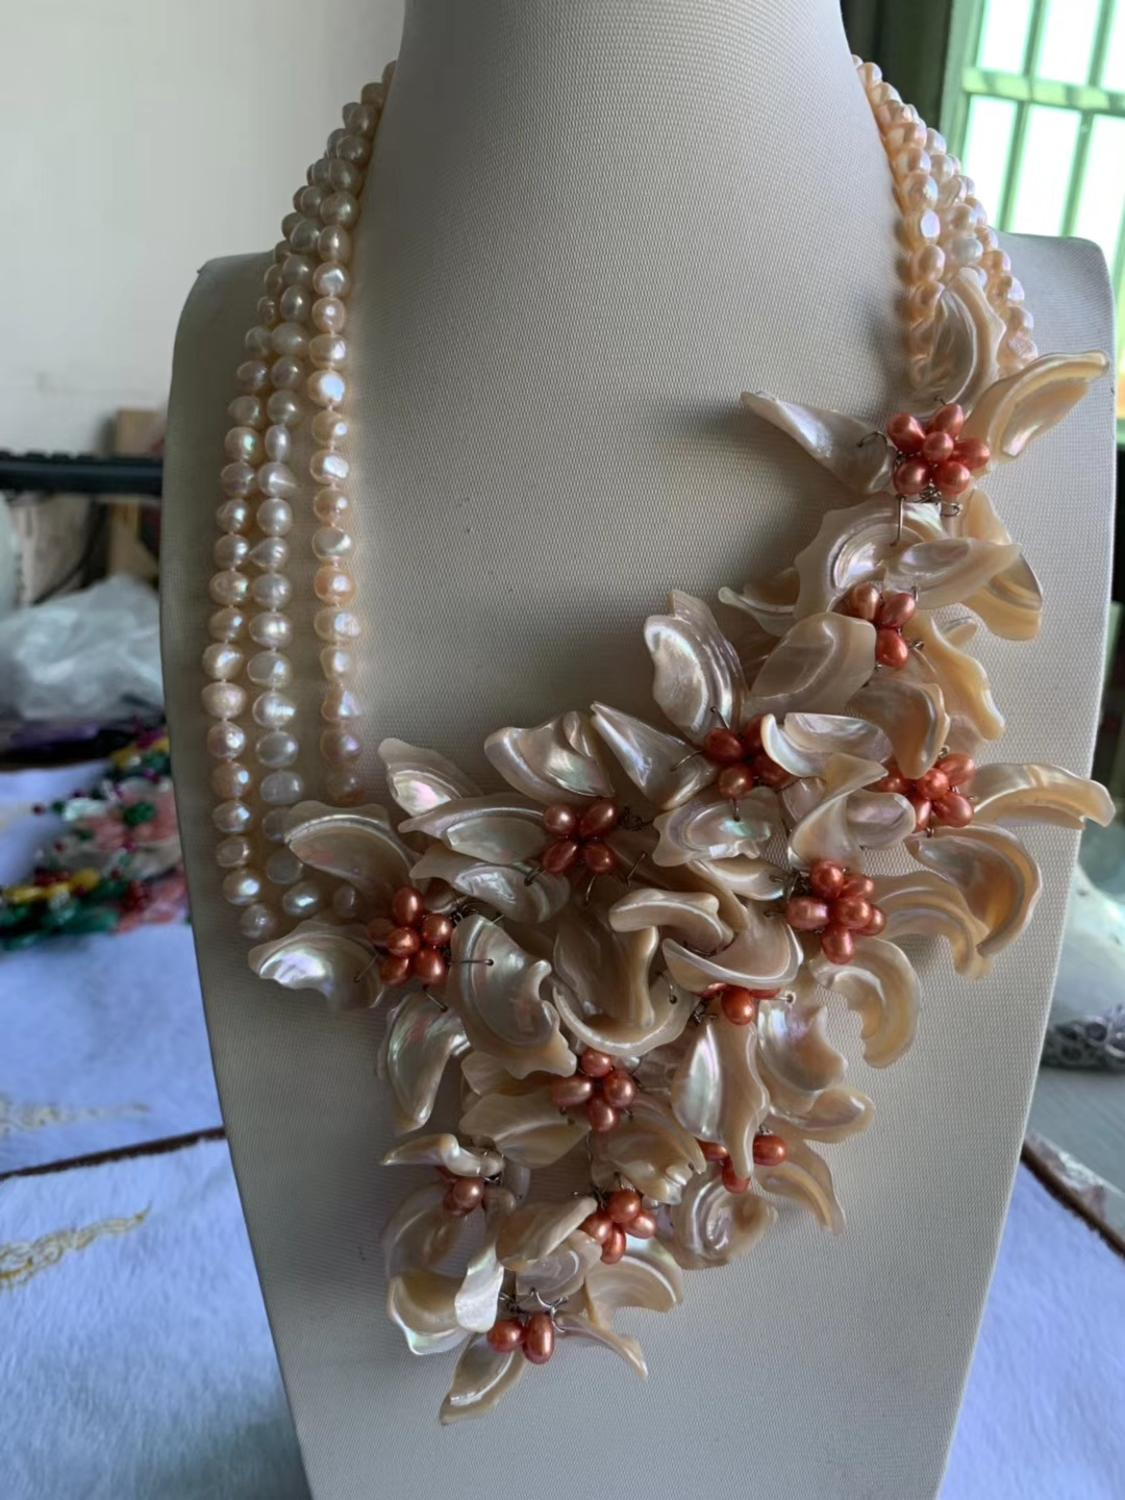 3rows freshwater pearl and sea shell  flower  necklace  17-19inch  wholesale beads nature FPPJ woman 2019 wedding necklace3rows freshwater pearl and sea shell  flower  necklace  17-19inch  wholesale beads nature FPPJ woman 2019 wedding necklace